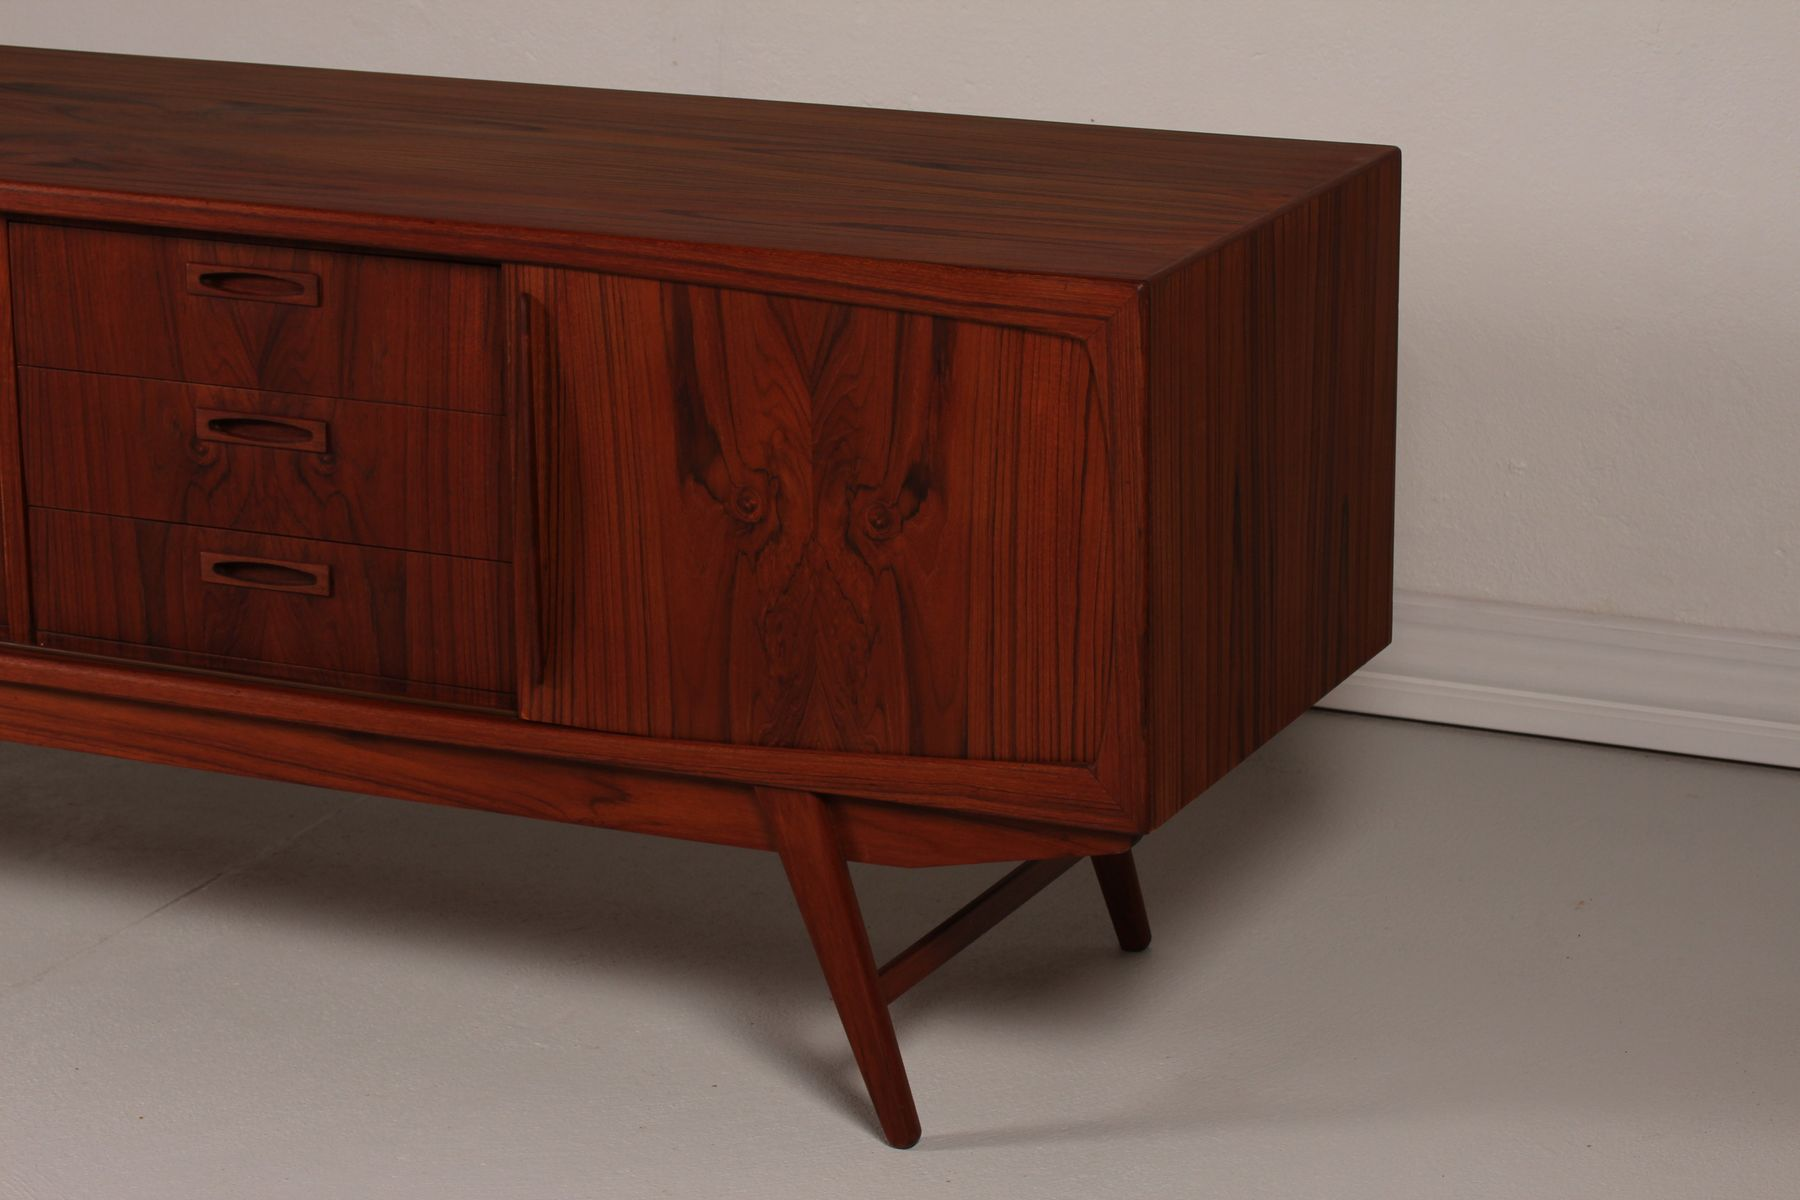 Danish long and low teak sideboard 1950s for sale at pamono for 1950 s credenza